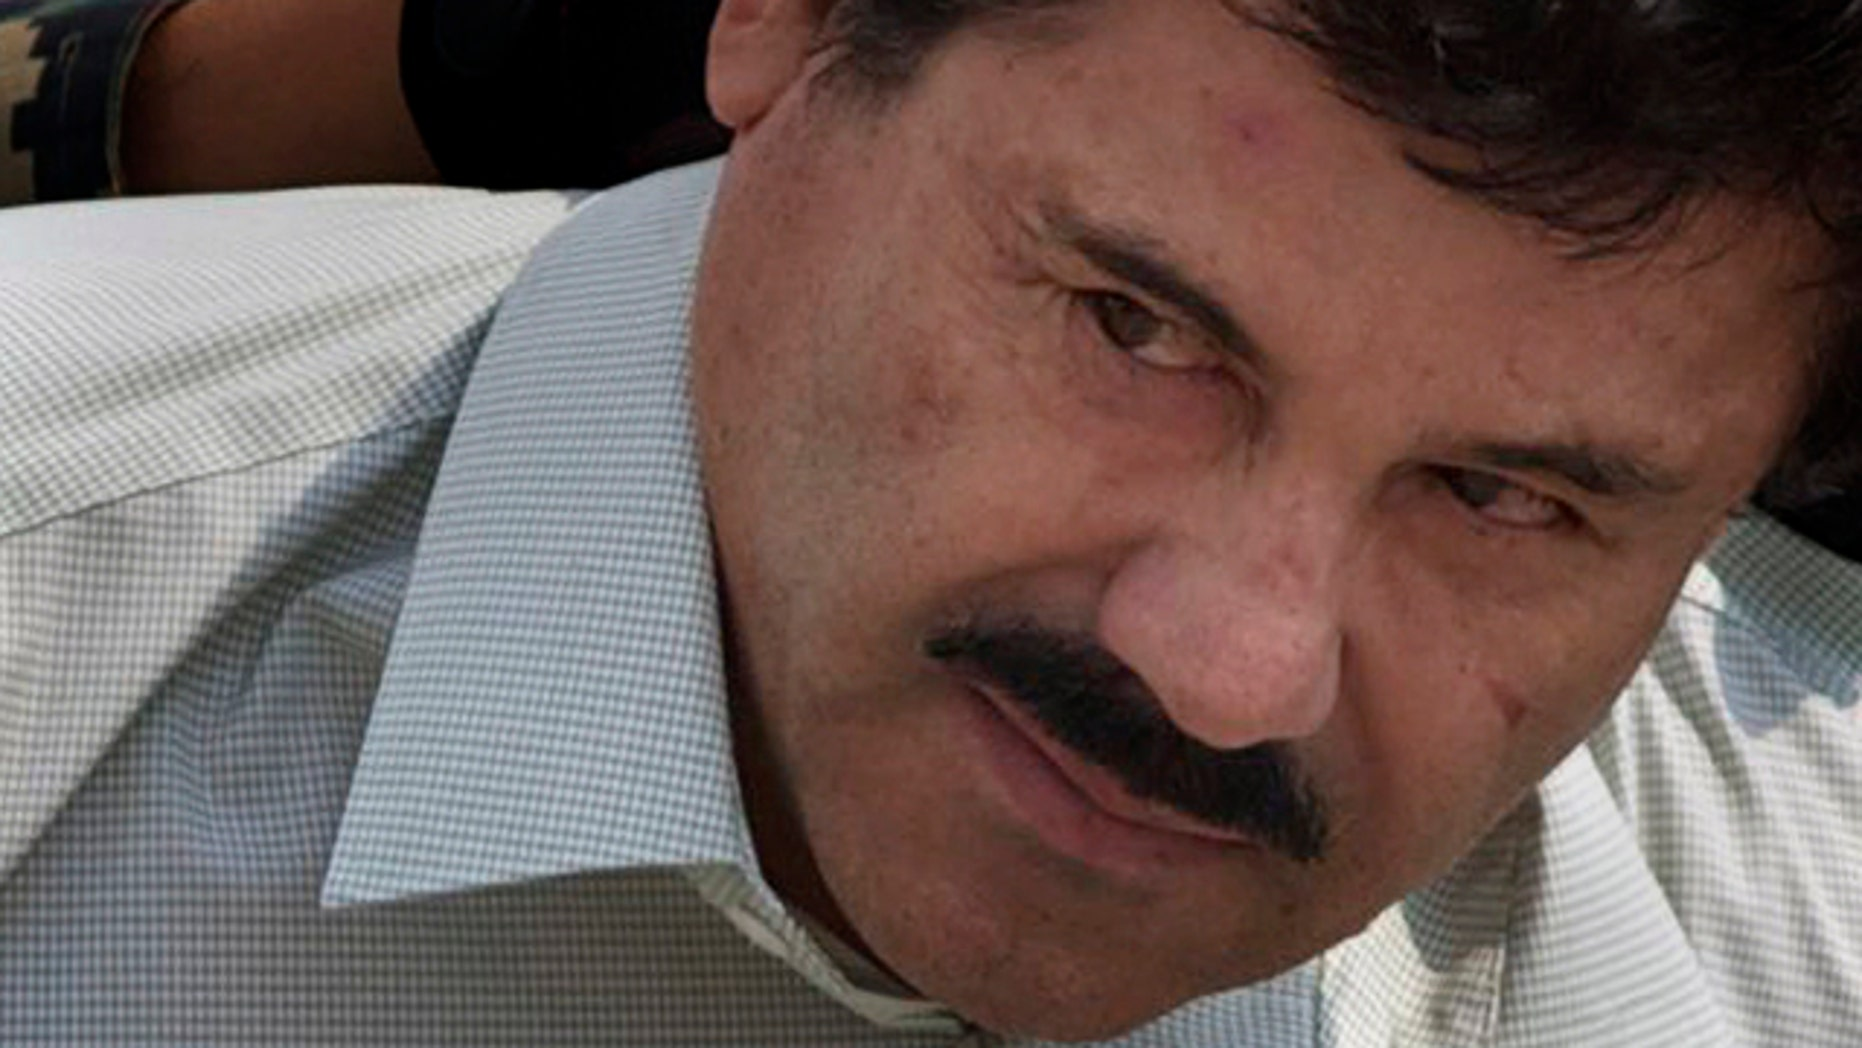 FILE - In this Feb. 22, 2014 file photo, Joaquin 'El Chapo' Guzman is escorted to a helicopter in handcuffs by Mexican Navy marines at a navy hanger in Mexico City. (AP Photo/Eduardo Verdugo, File)